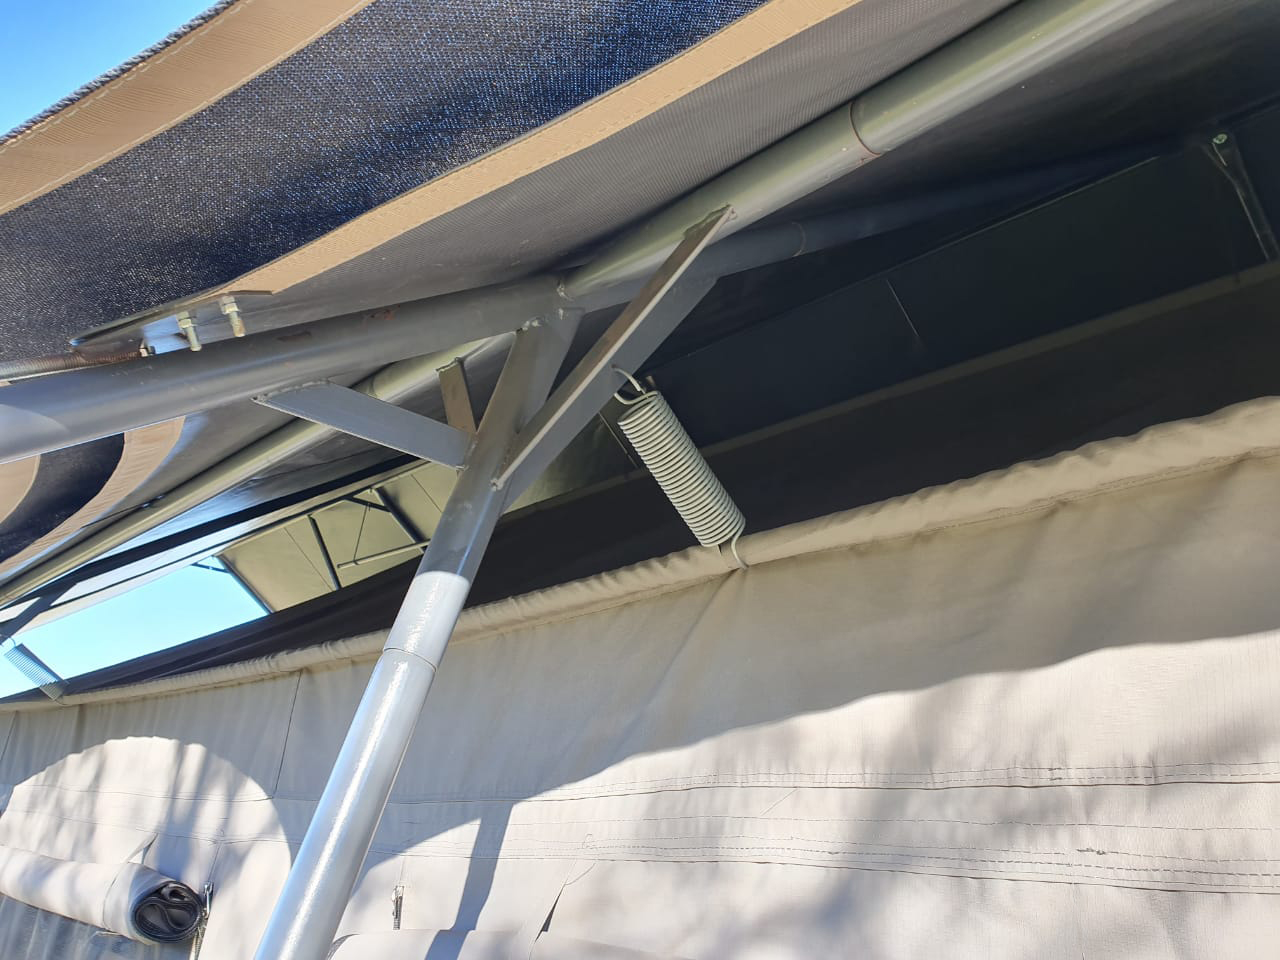 Tent Tensioning System